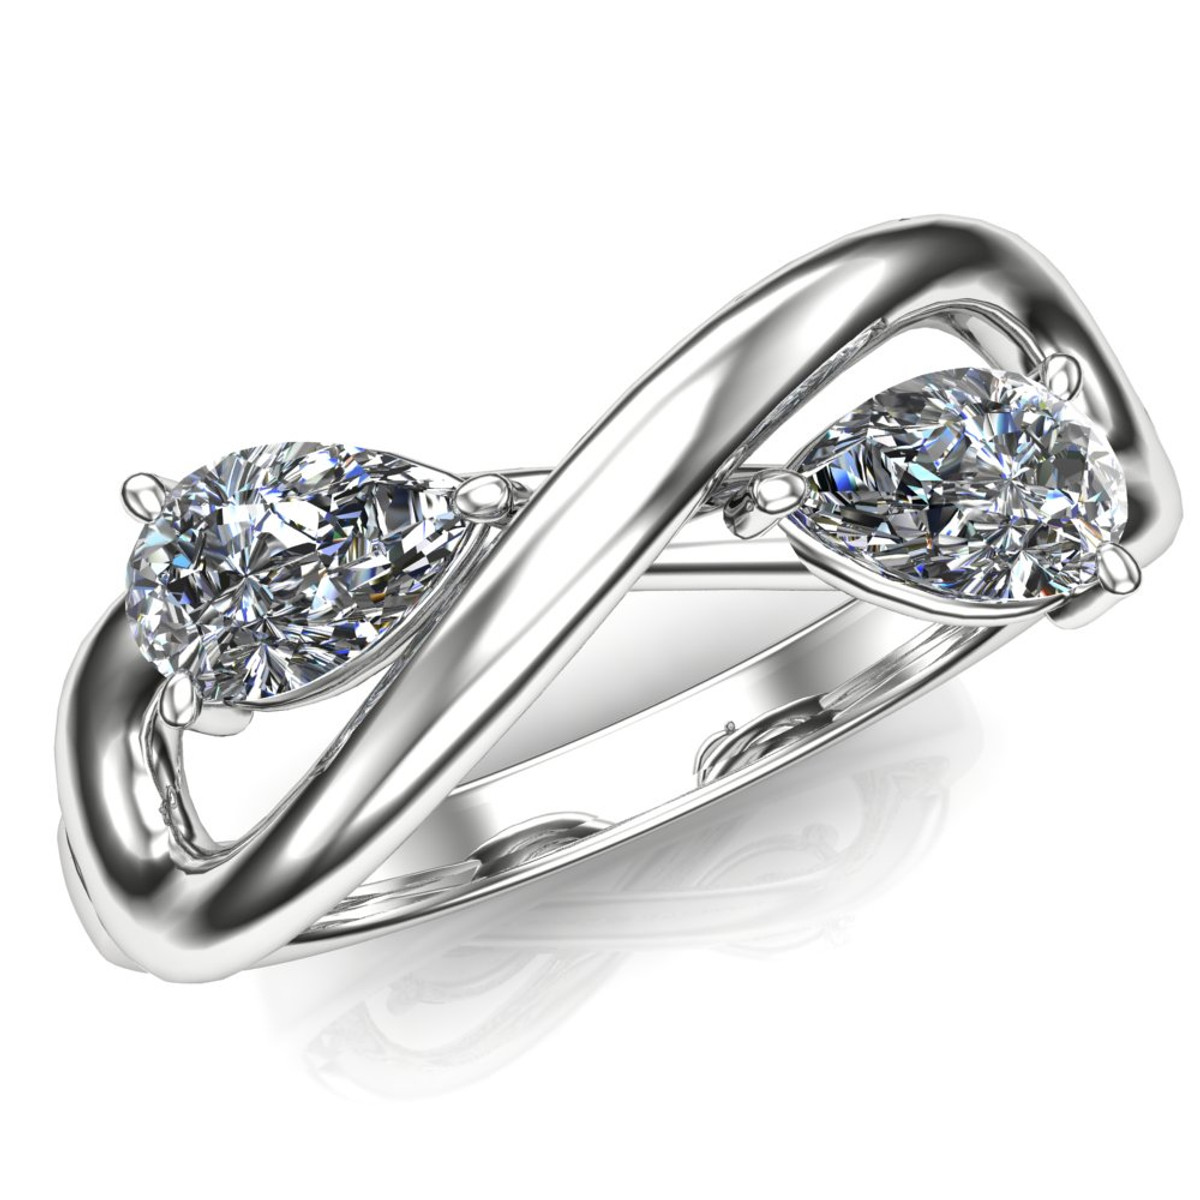 band infinity luxury with me show wear rings the of your you engagement wedding ring